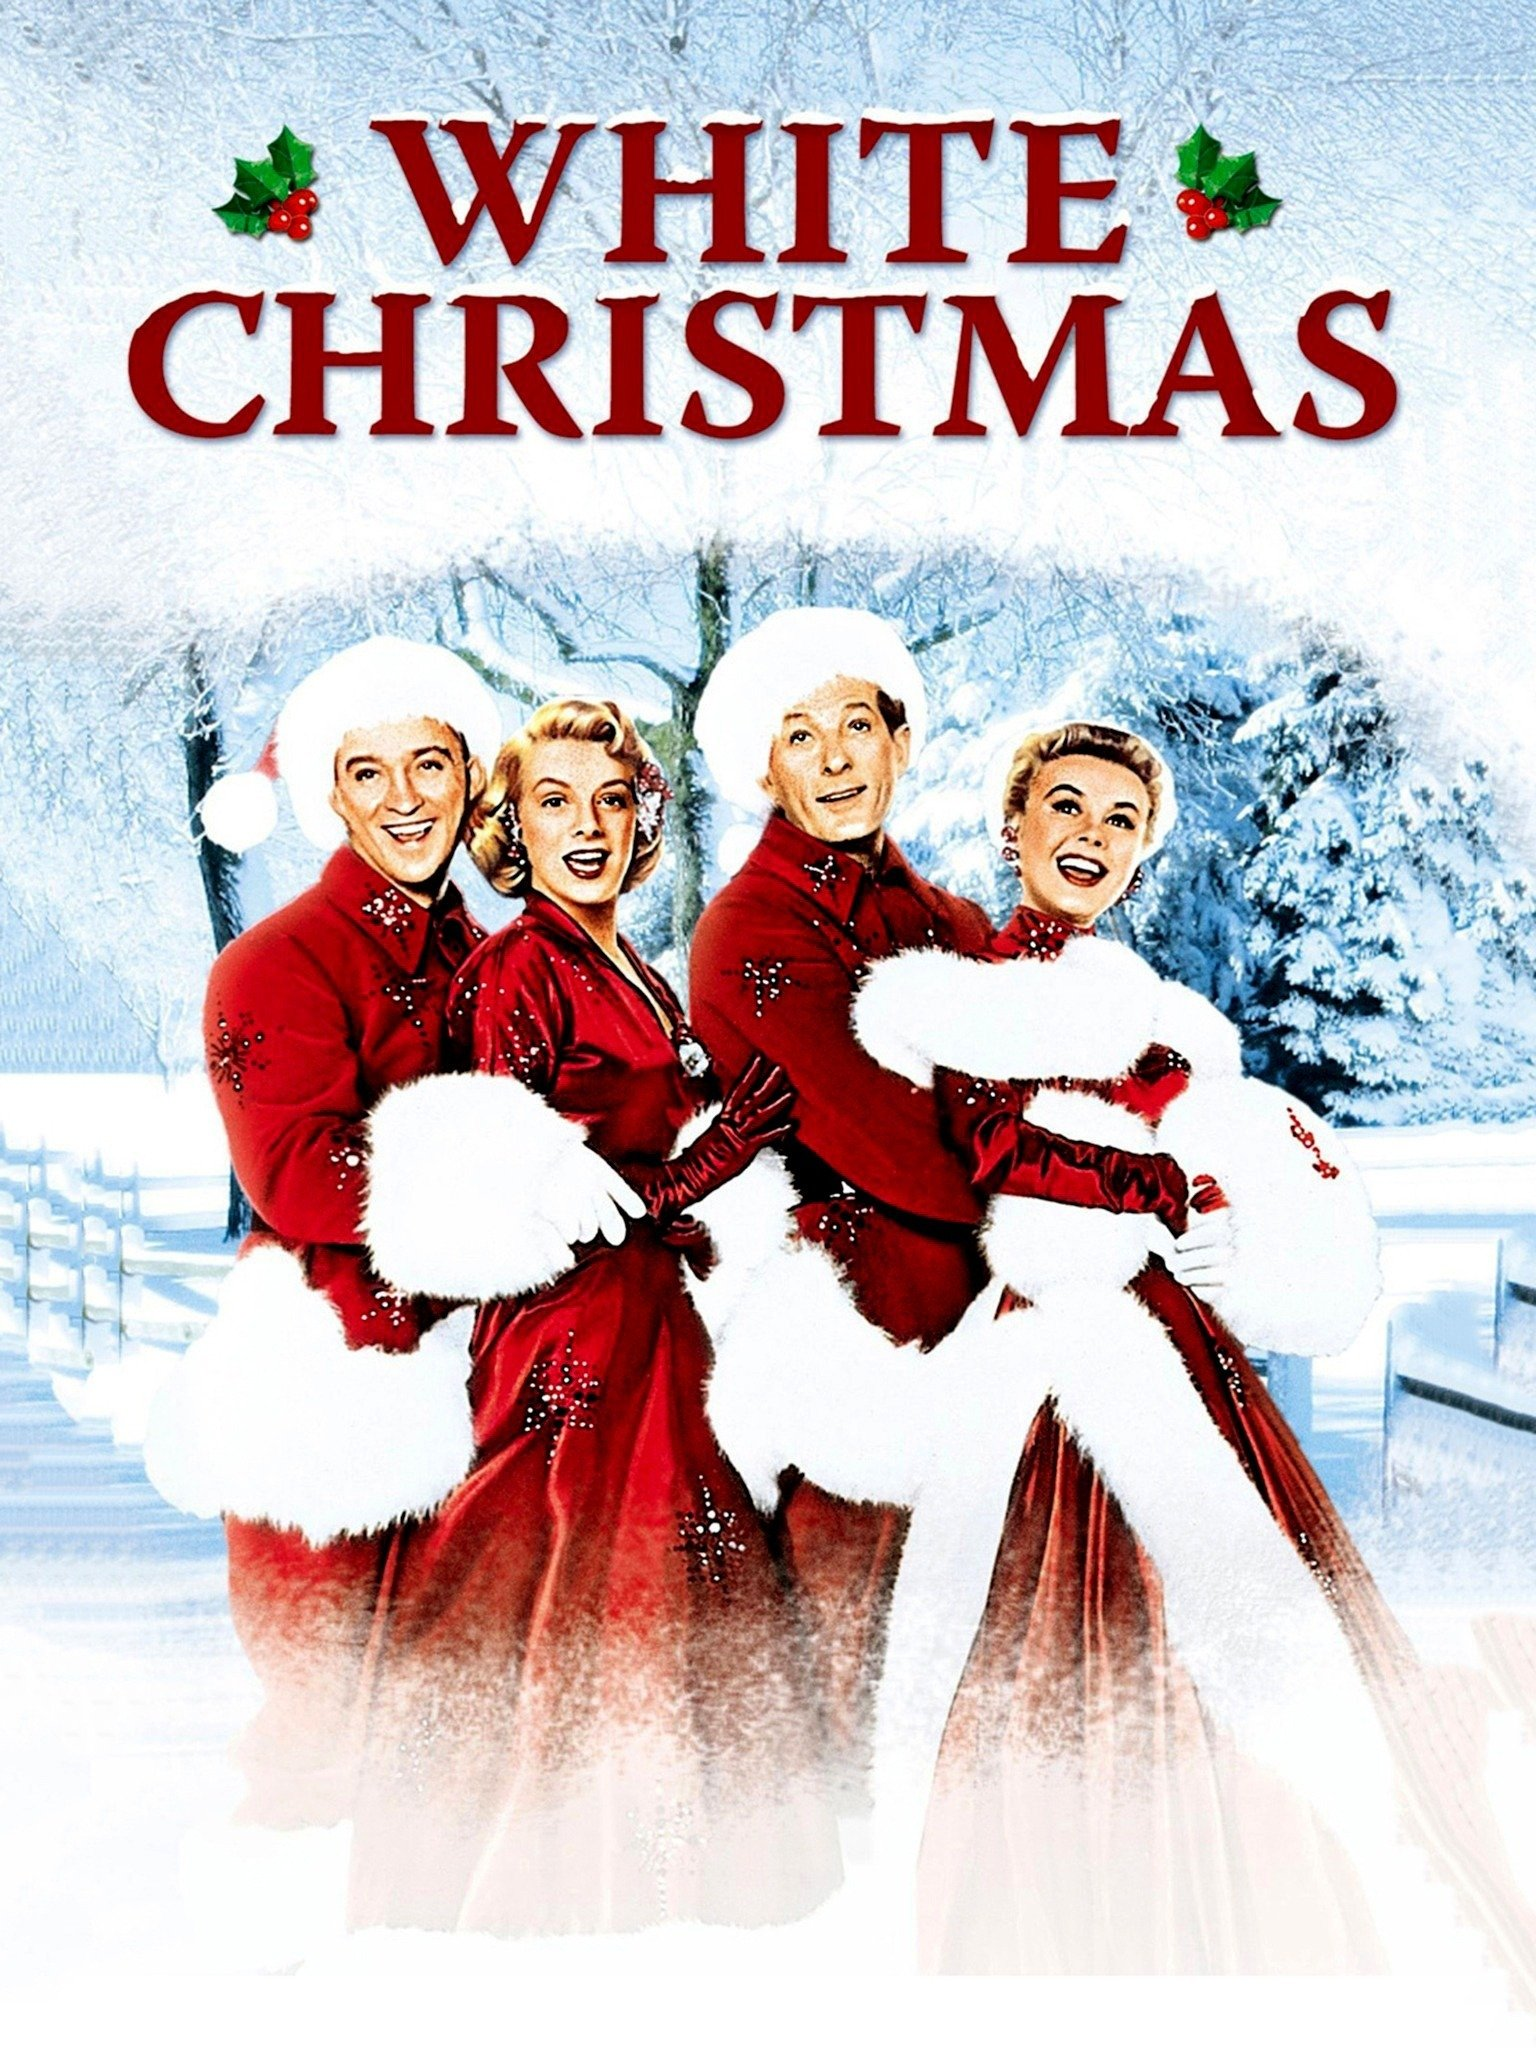 White Christmas In Theaters 2021 White Christmas 1954 Rotten Tomatoes